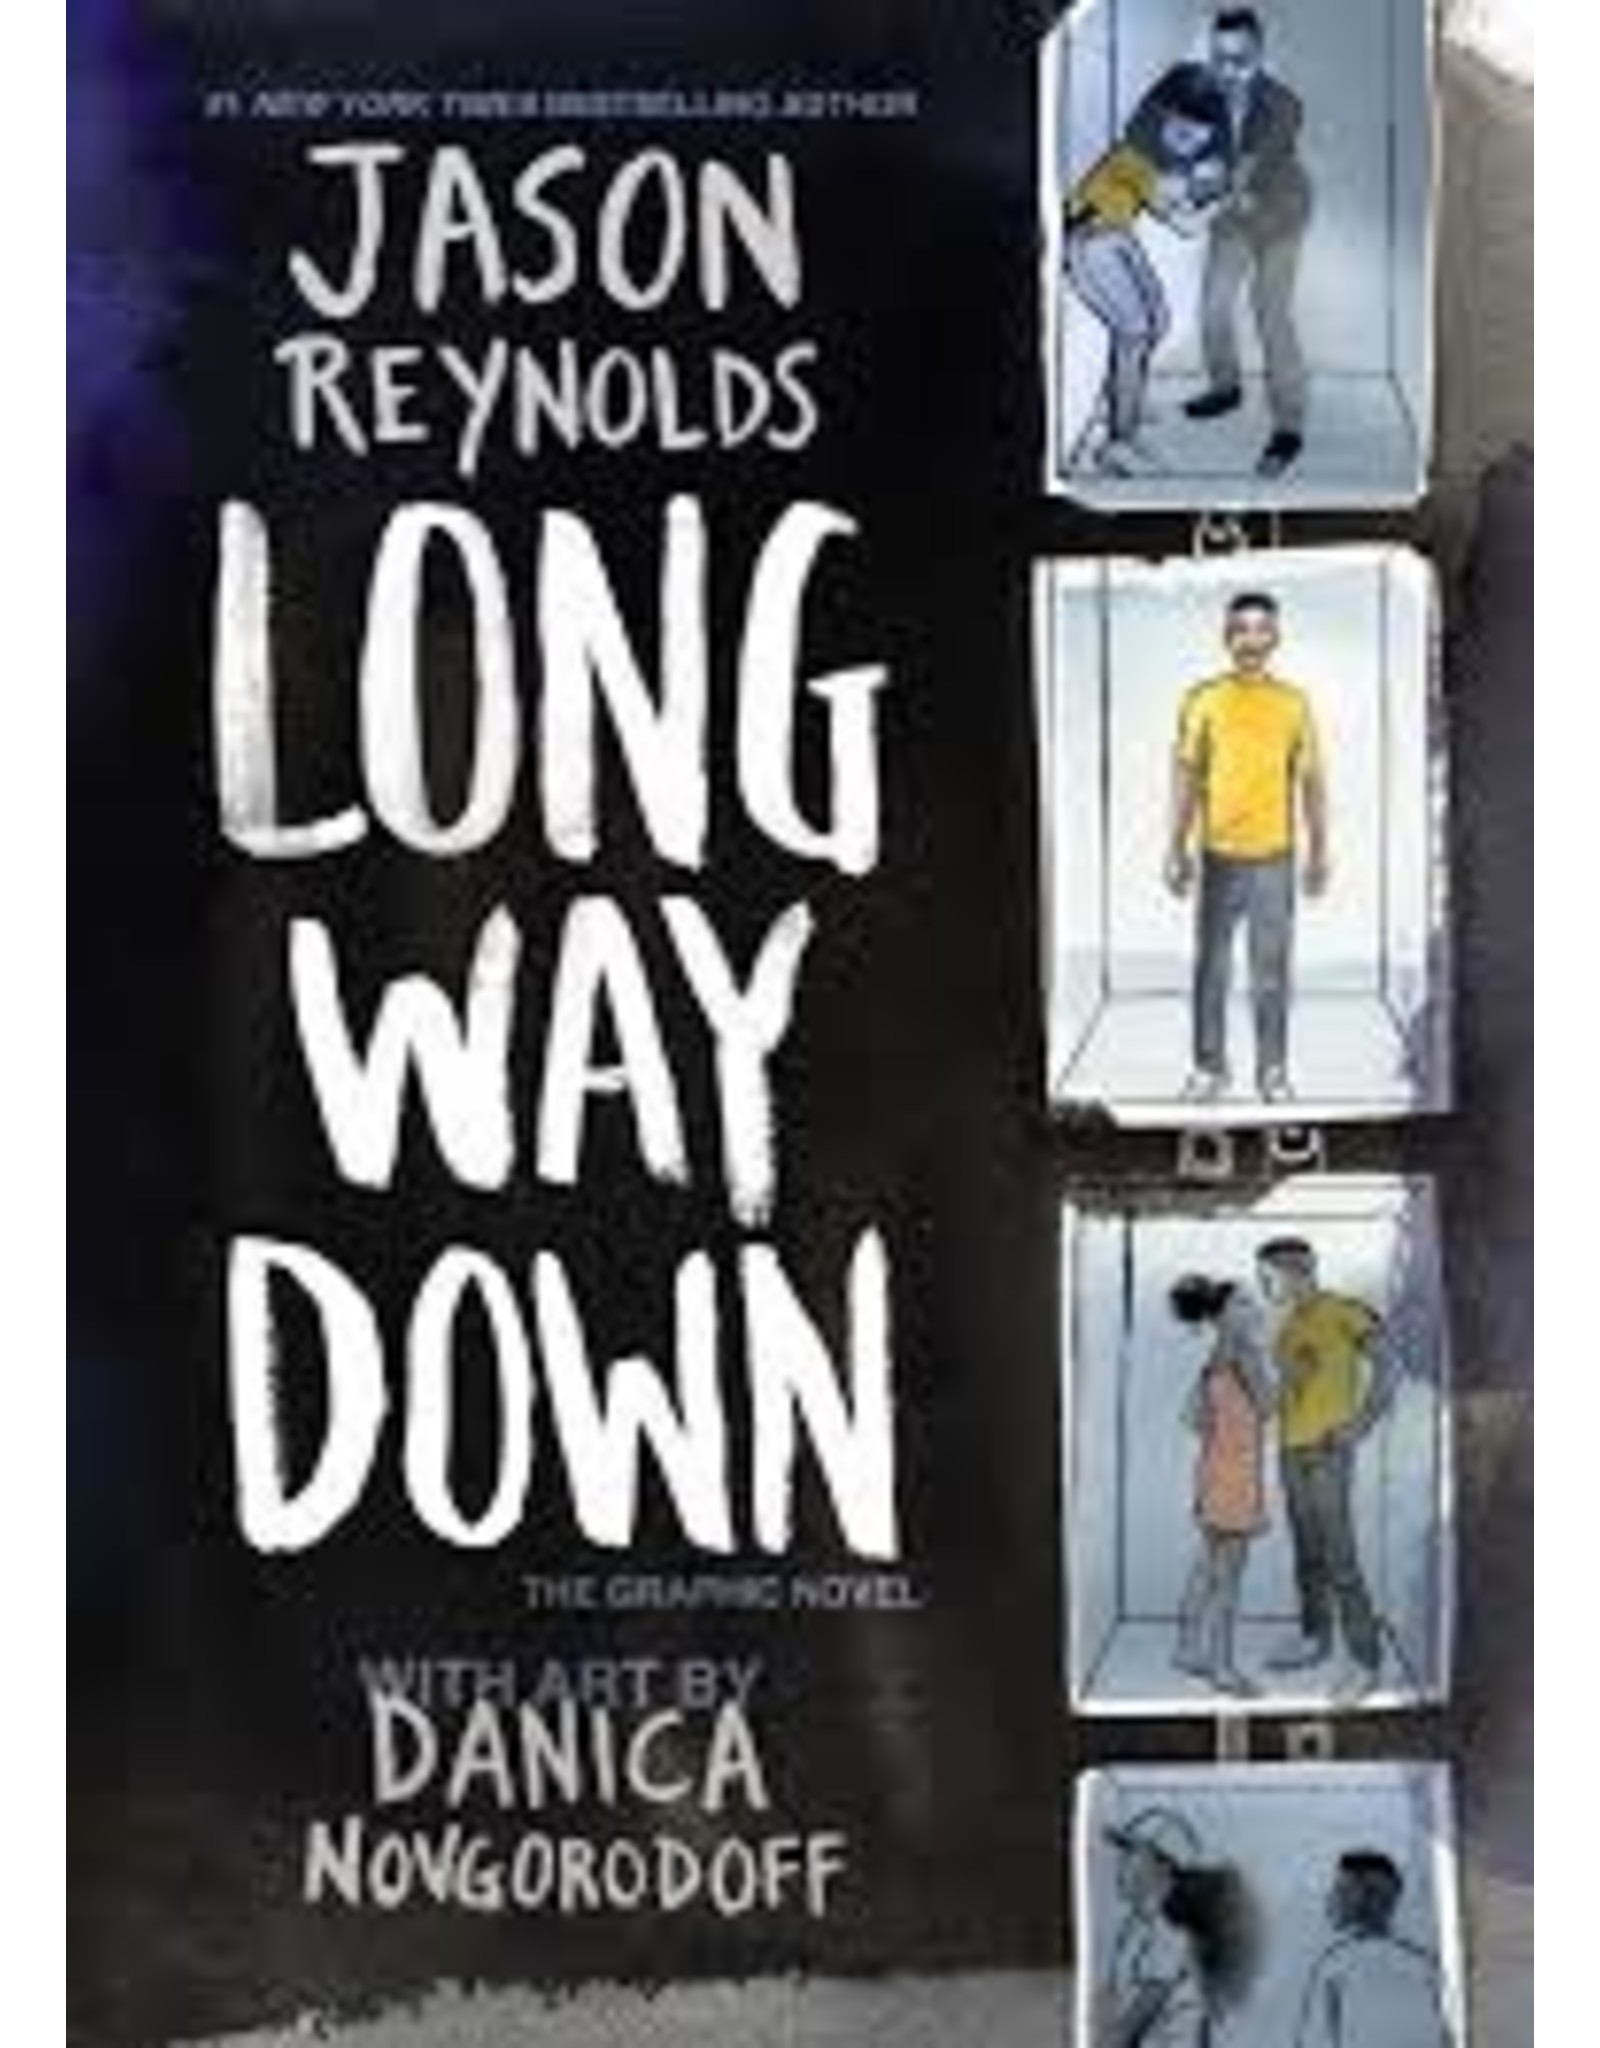 Books Long Way Down : The Graphic Novel by Jason Reynolds with Art by Danica Novgorodoff ( Holiday Catalog)